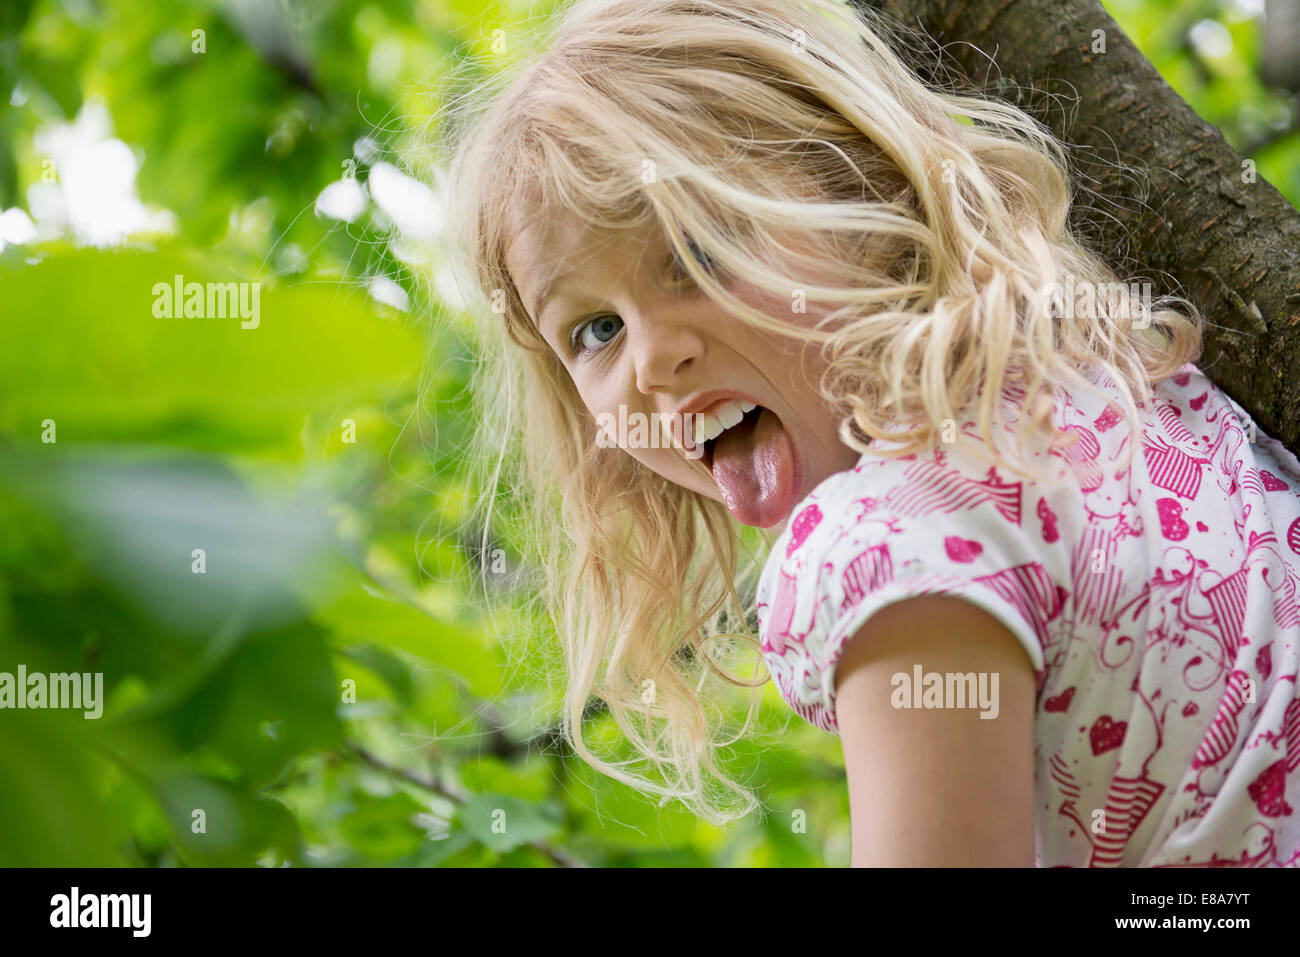 Young girl sitting in tree sticking tongue out - Stock Image